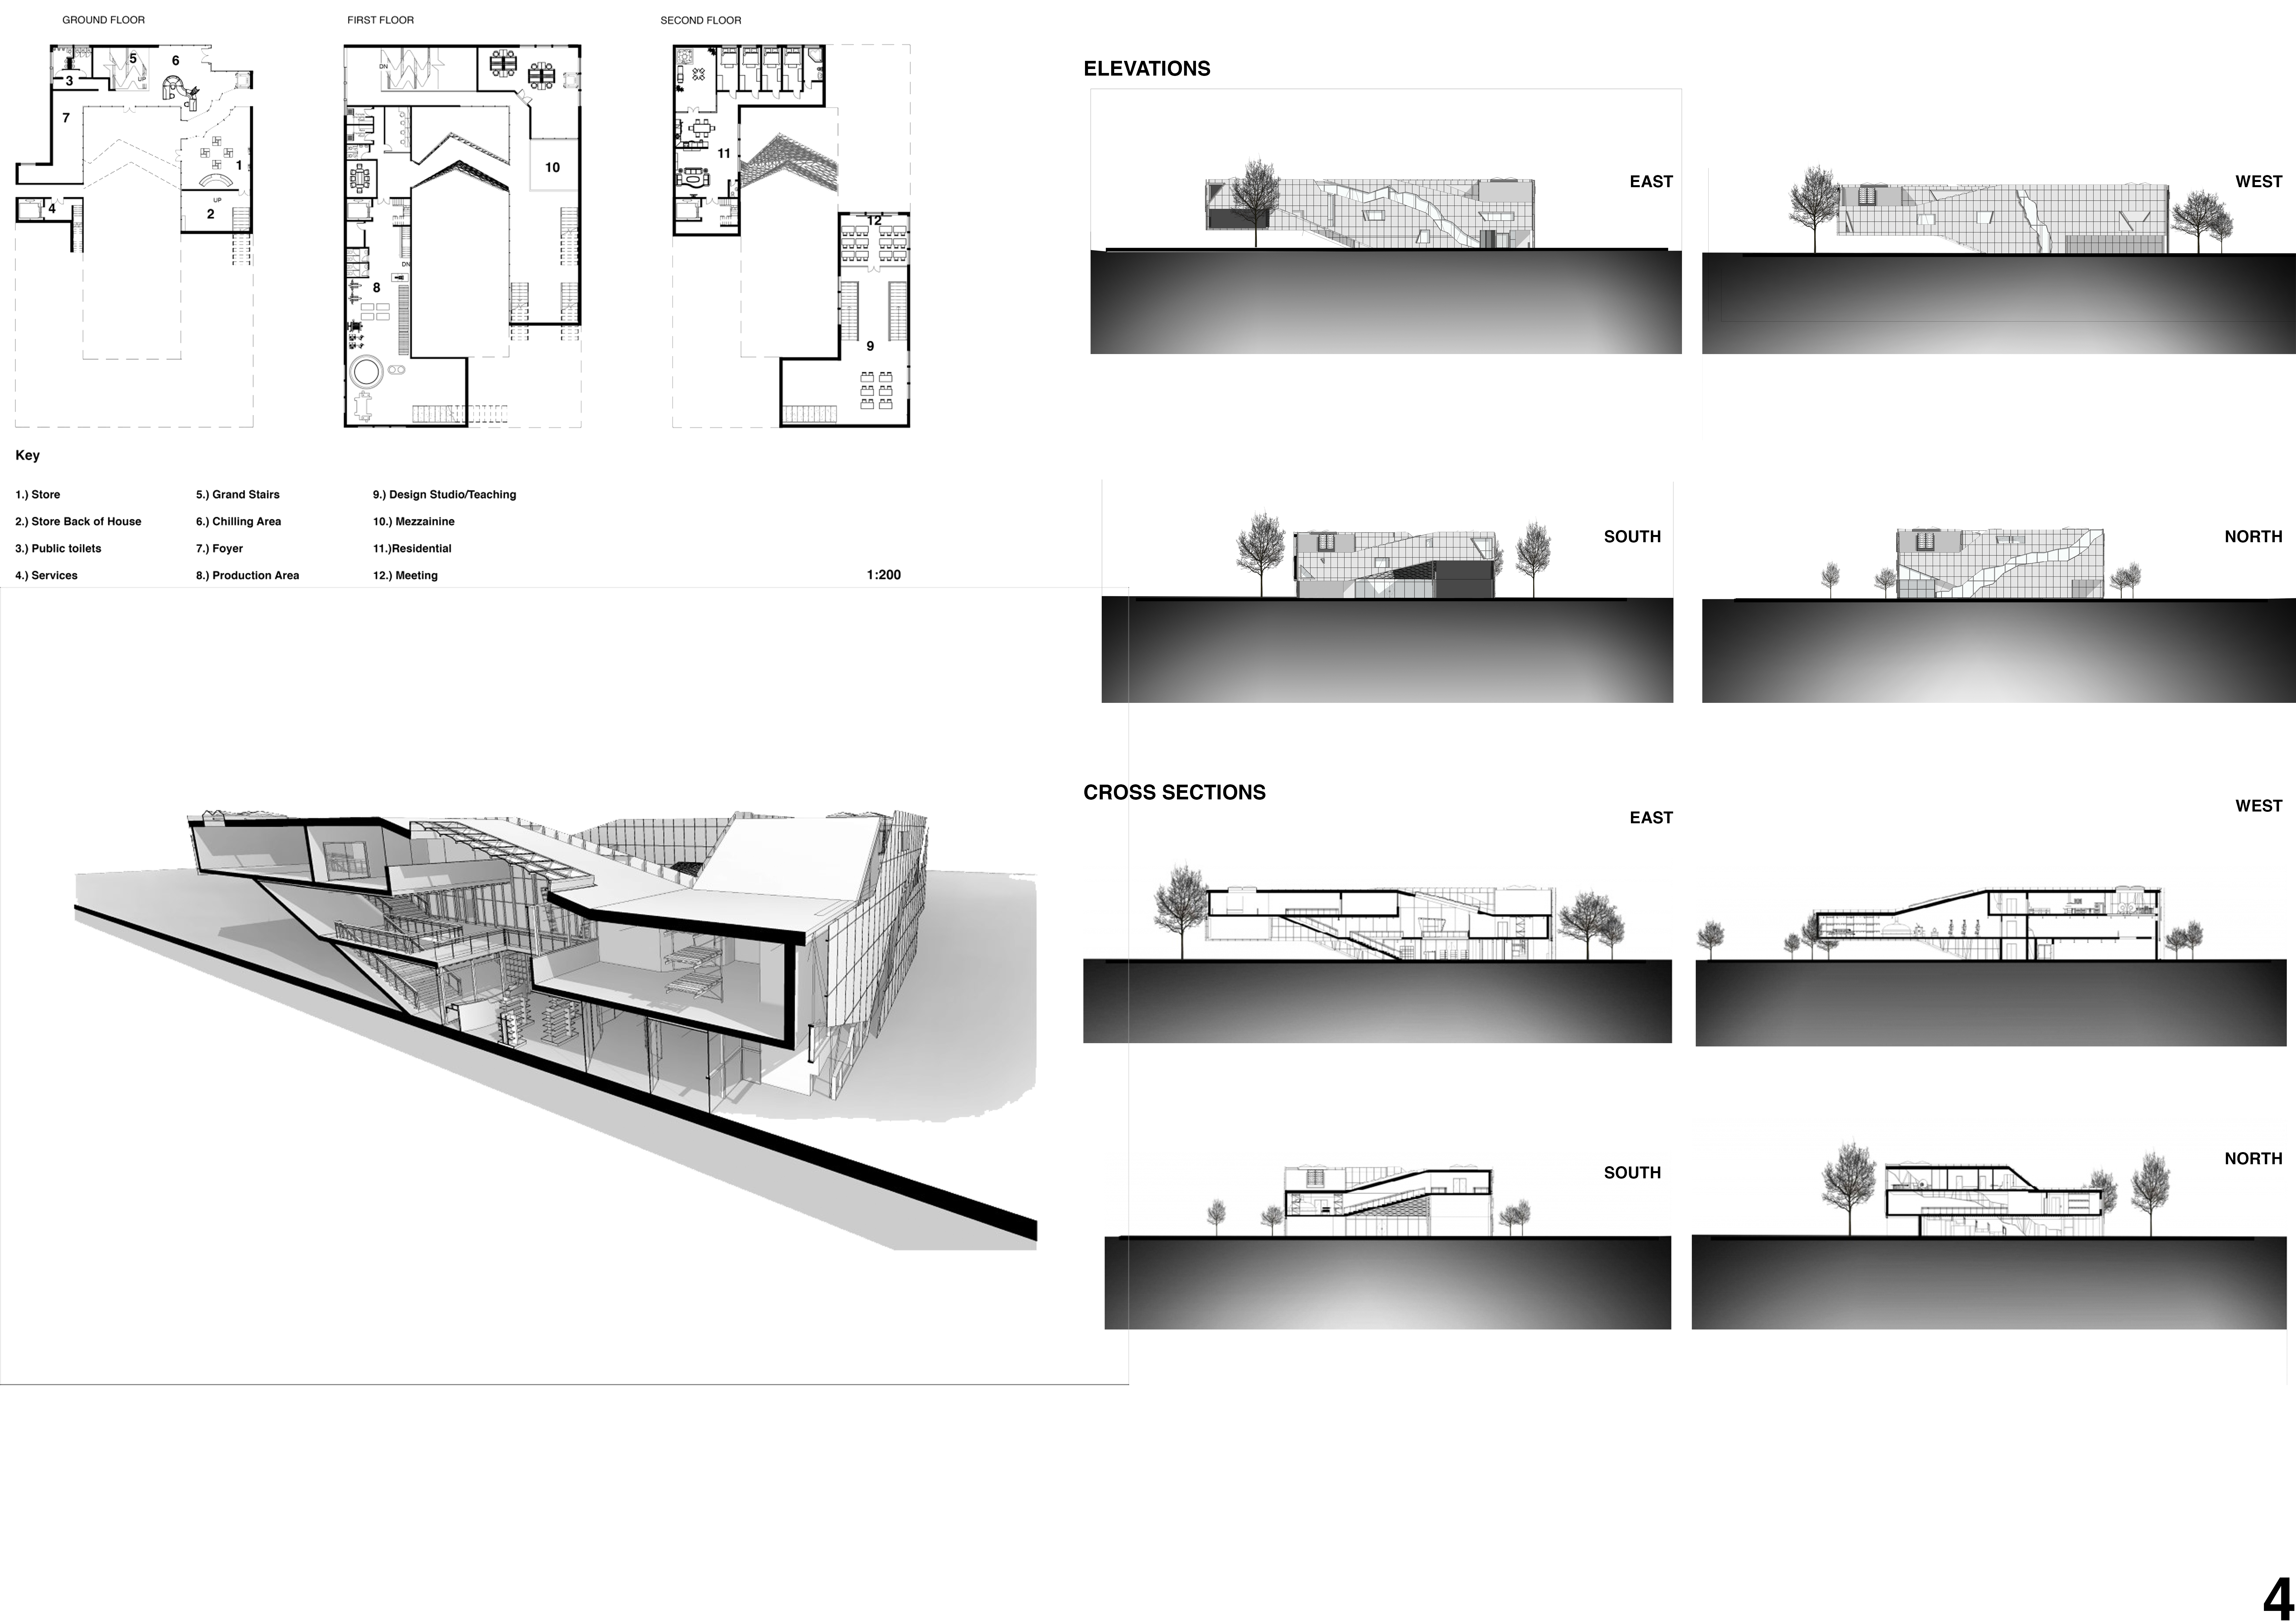 Floor Plans, Cross sections, Elevations and Axonometric Image